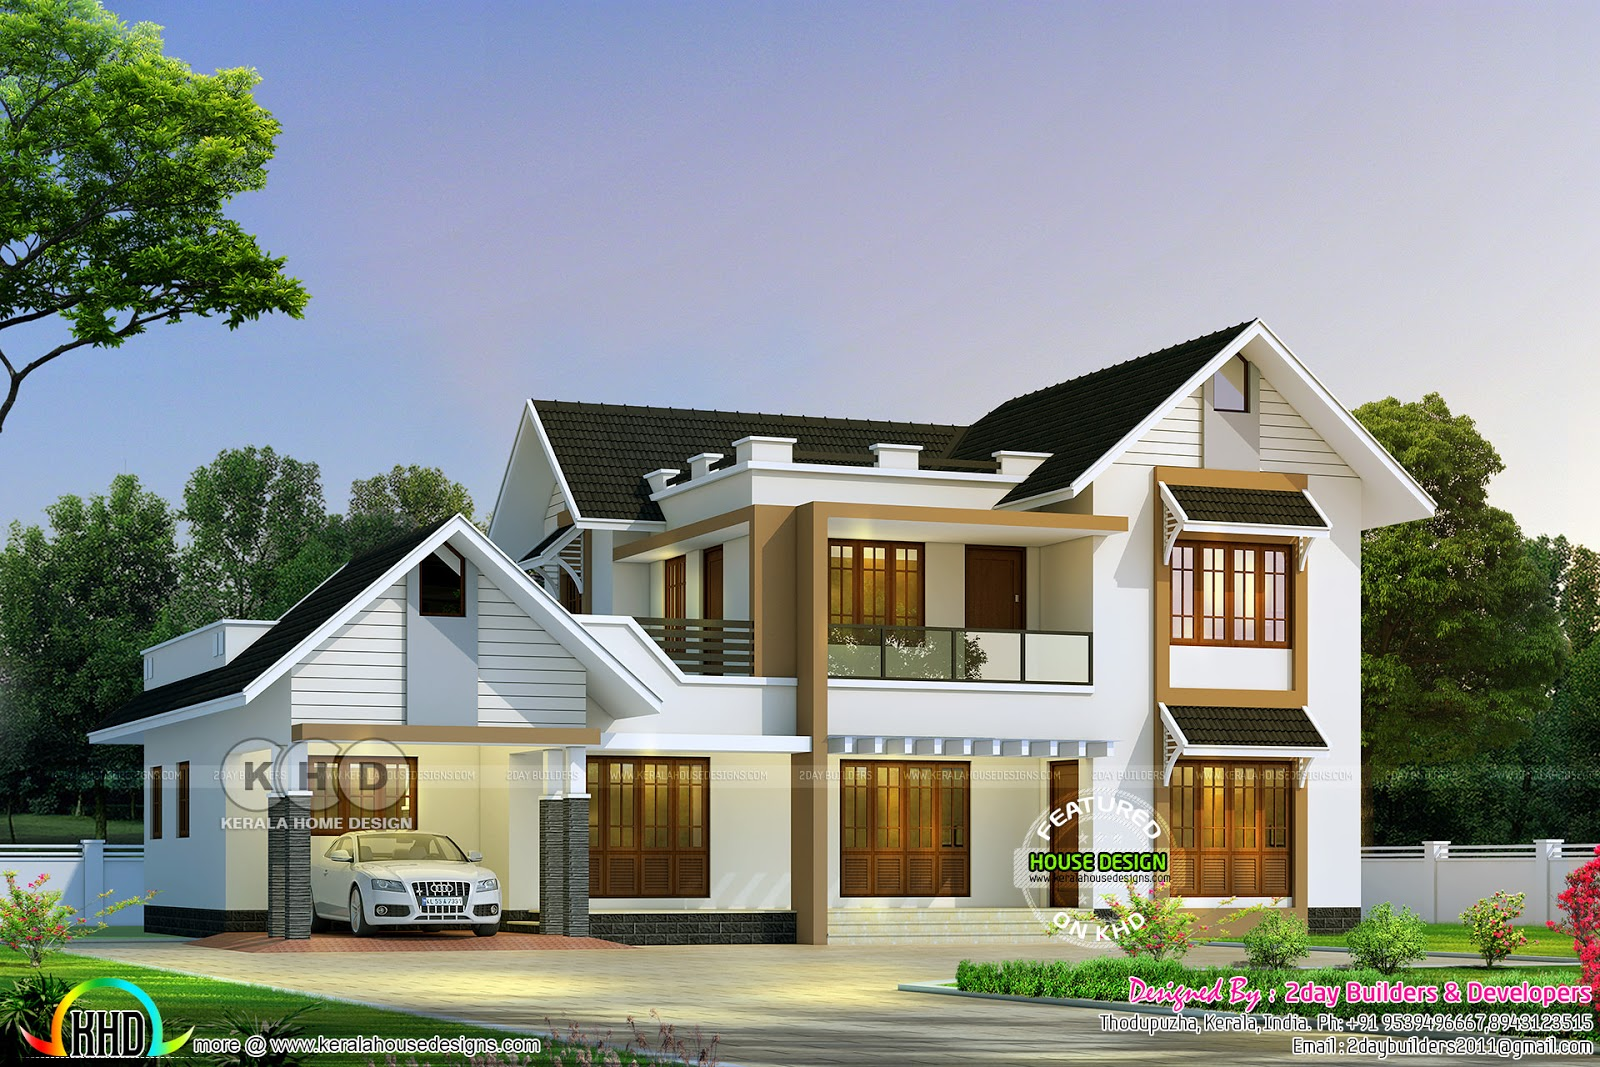 2017 kerala home design and floor plans for Home designs kerala photos